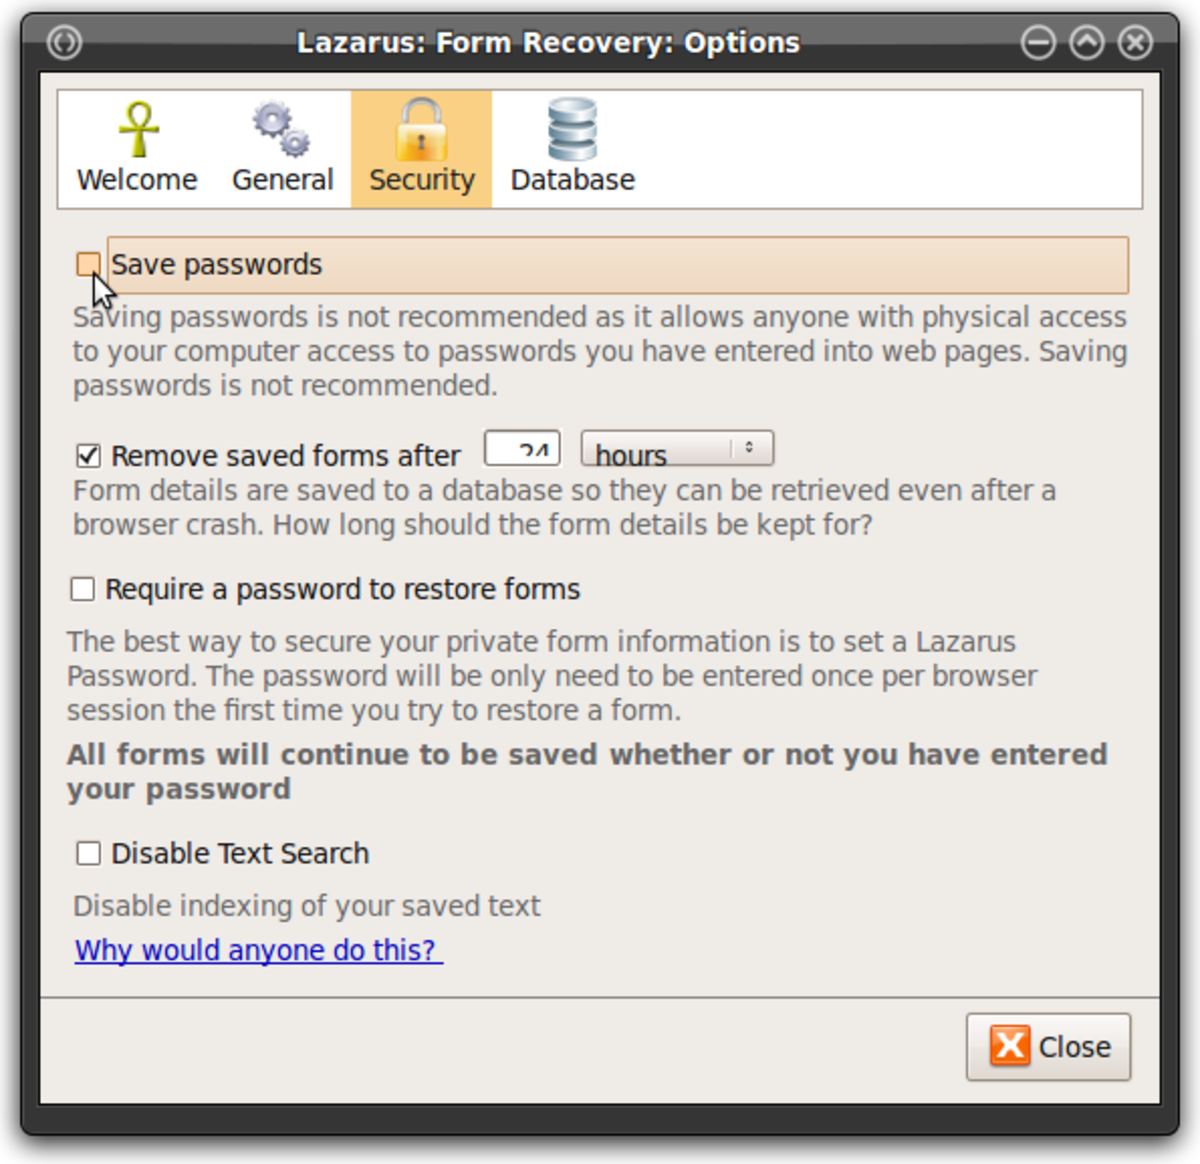 The Lazarus form data recovery software includes an option to save passwords, but it is not recommended. There are better alternatives for saving passwords.